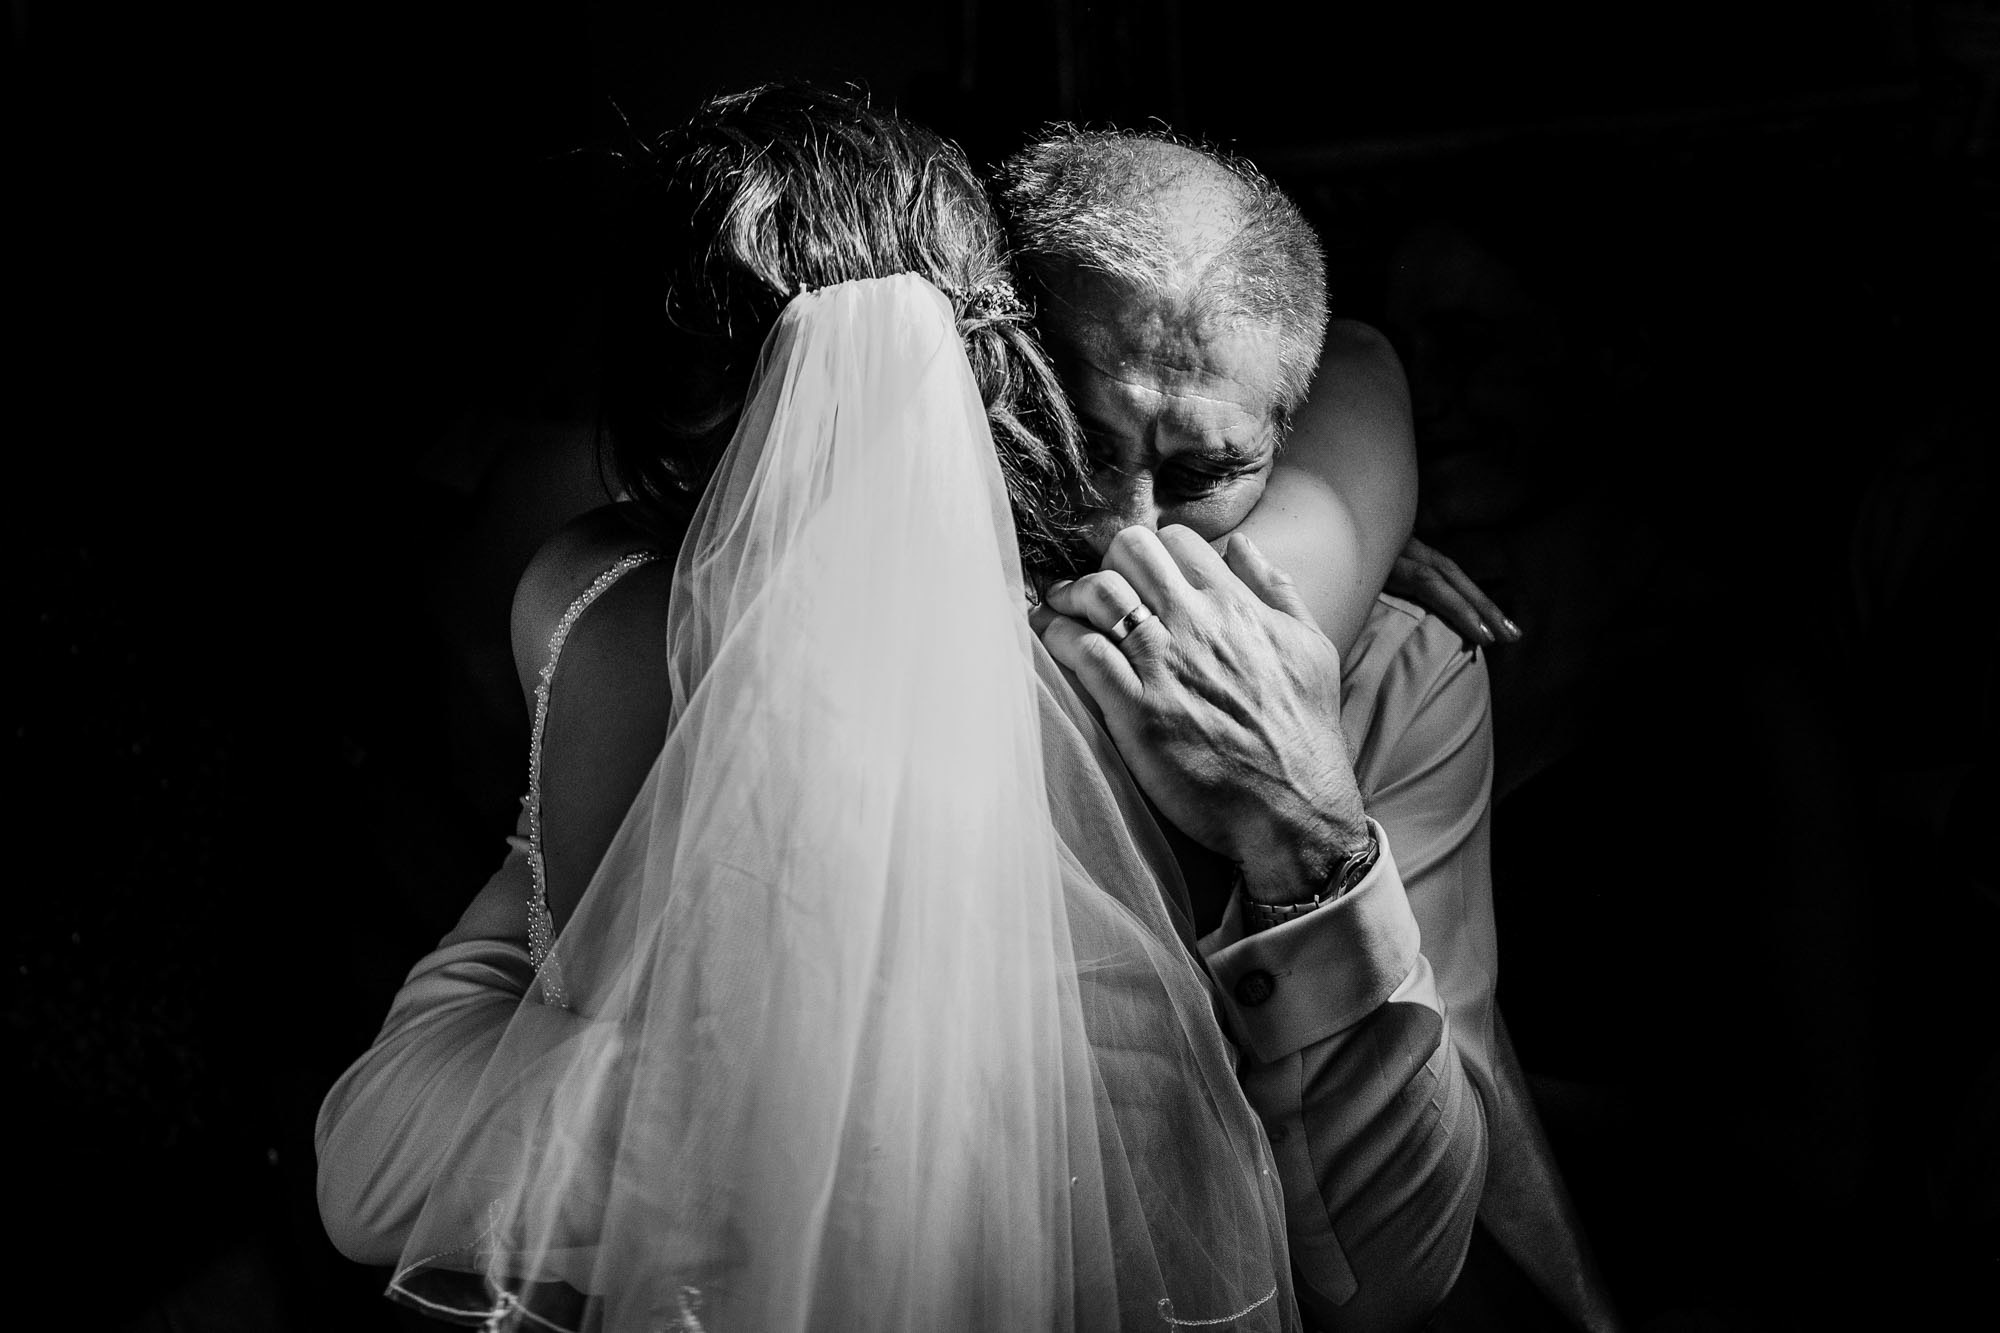 black and White wedding photography-3.jpg